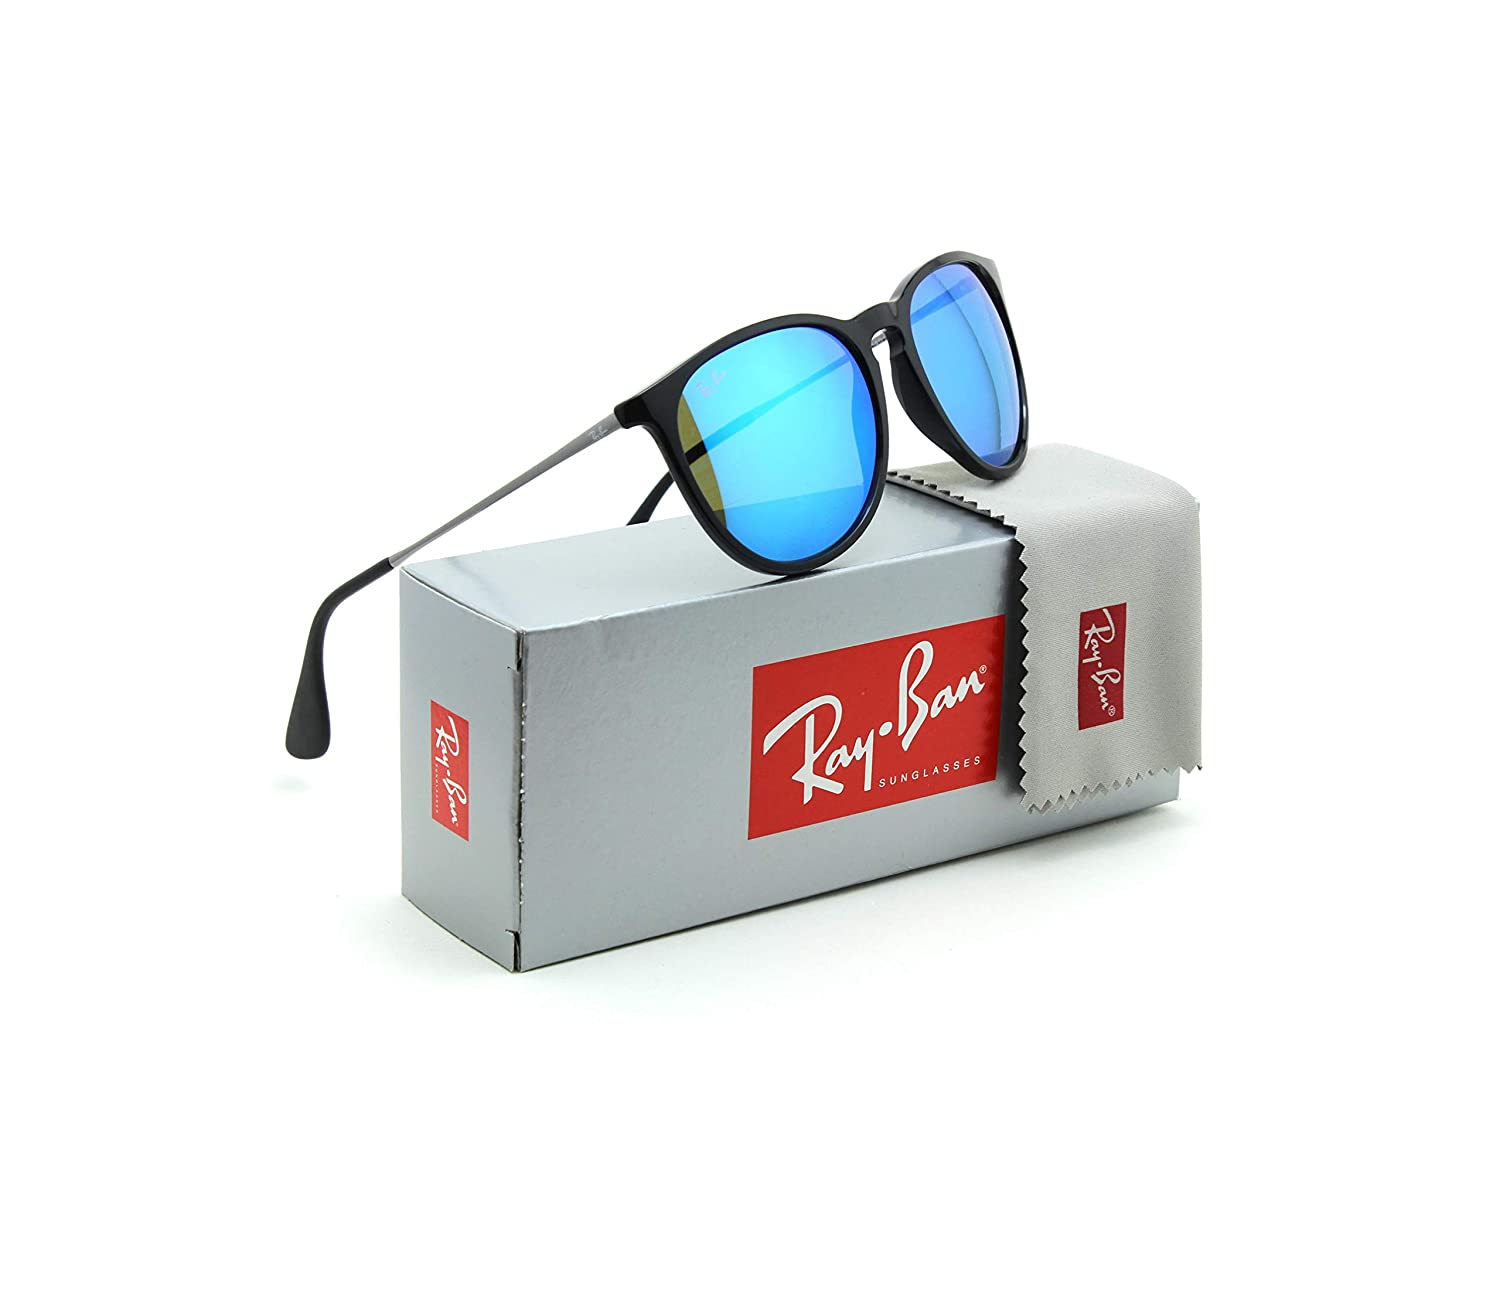 Ray-Ban RB4171 Erica Color Mix Mujeres Espejo Gafas de sol ...